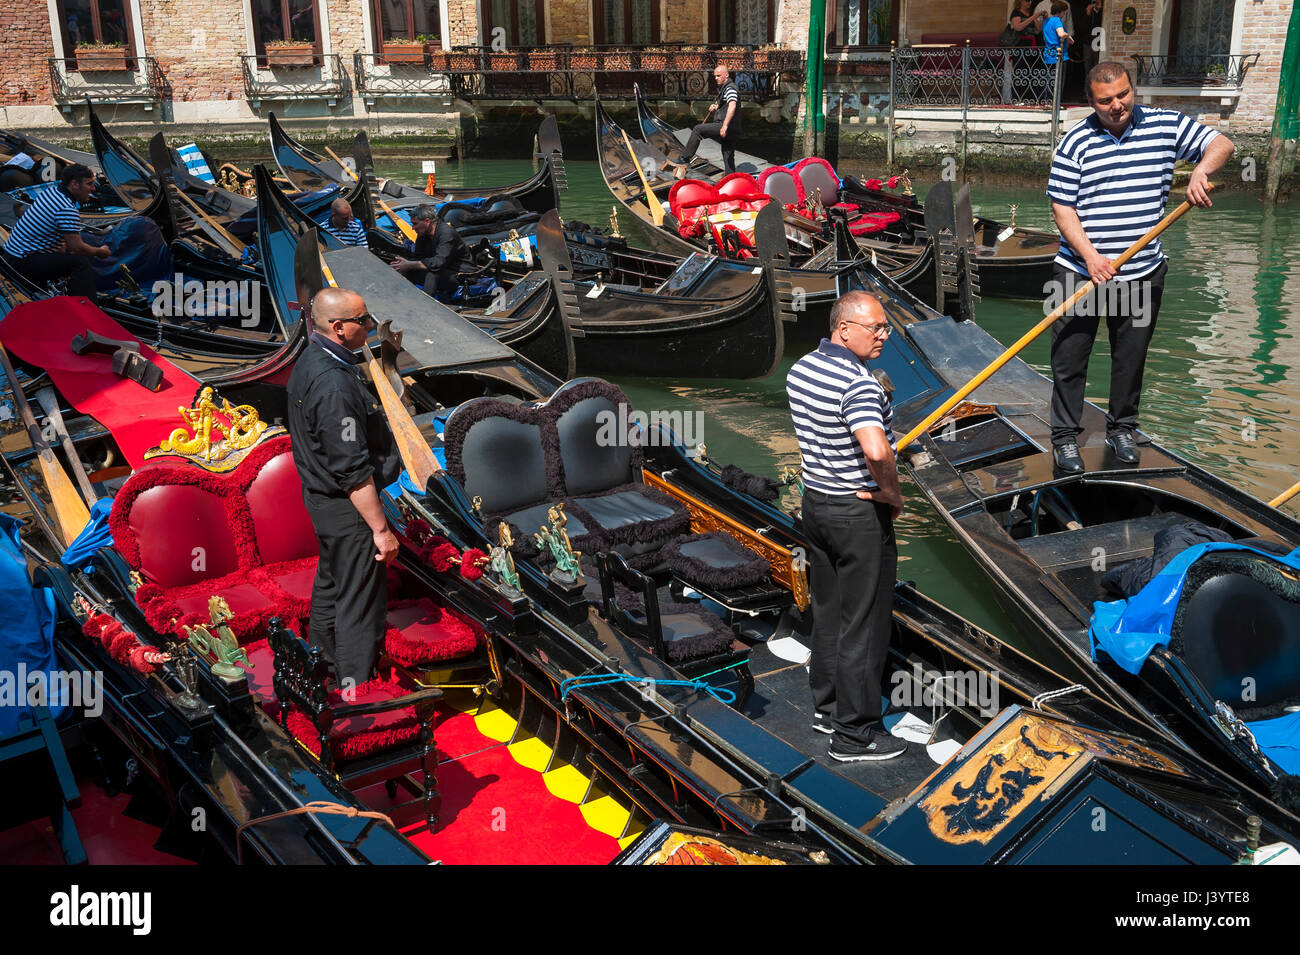 VENICE - APRIL 21, 2013: Venetian gondoliers work in the traditional Bacino Orseolo gondola parking lot behind the - Stock Image